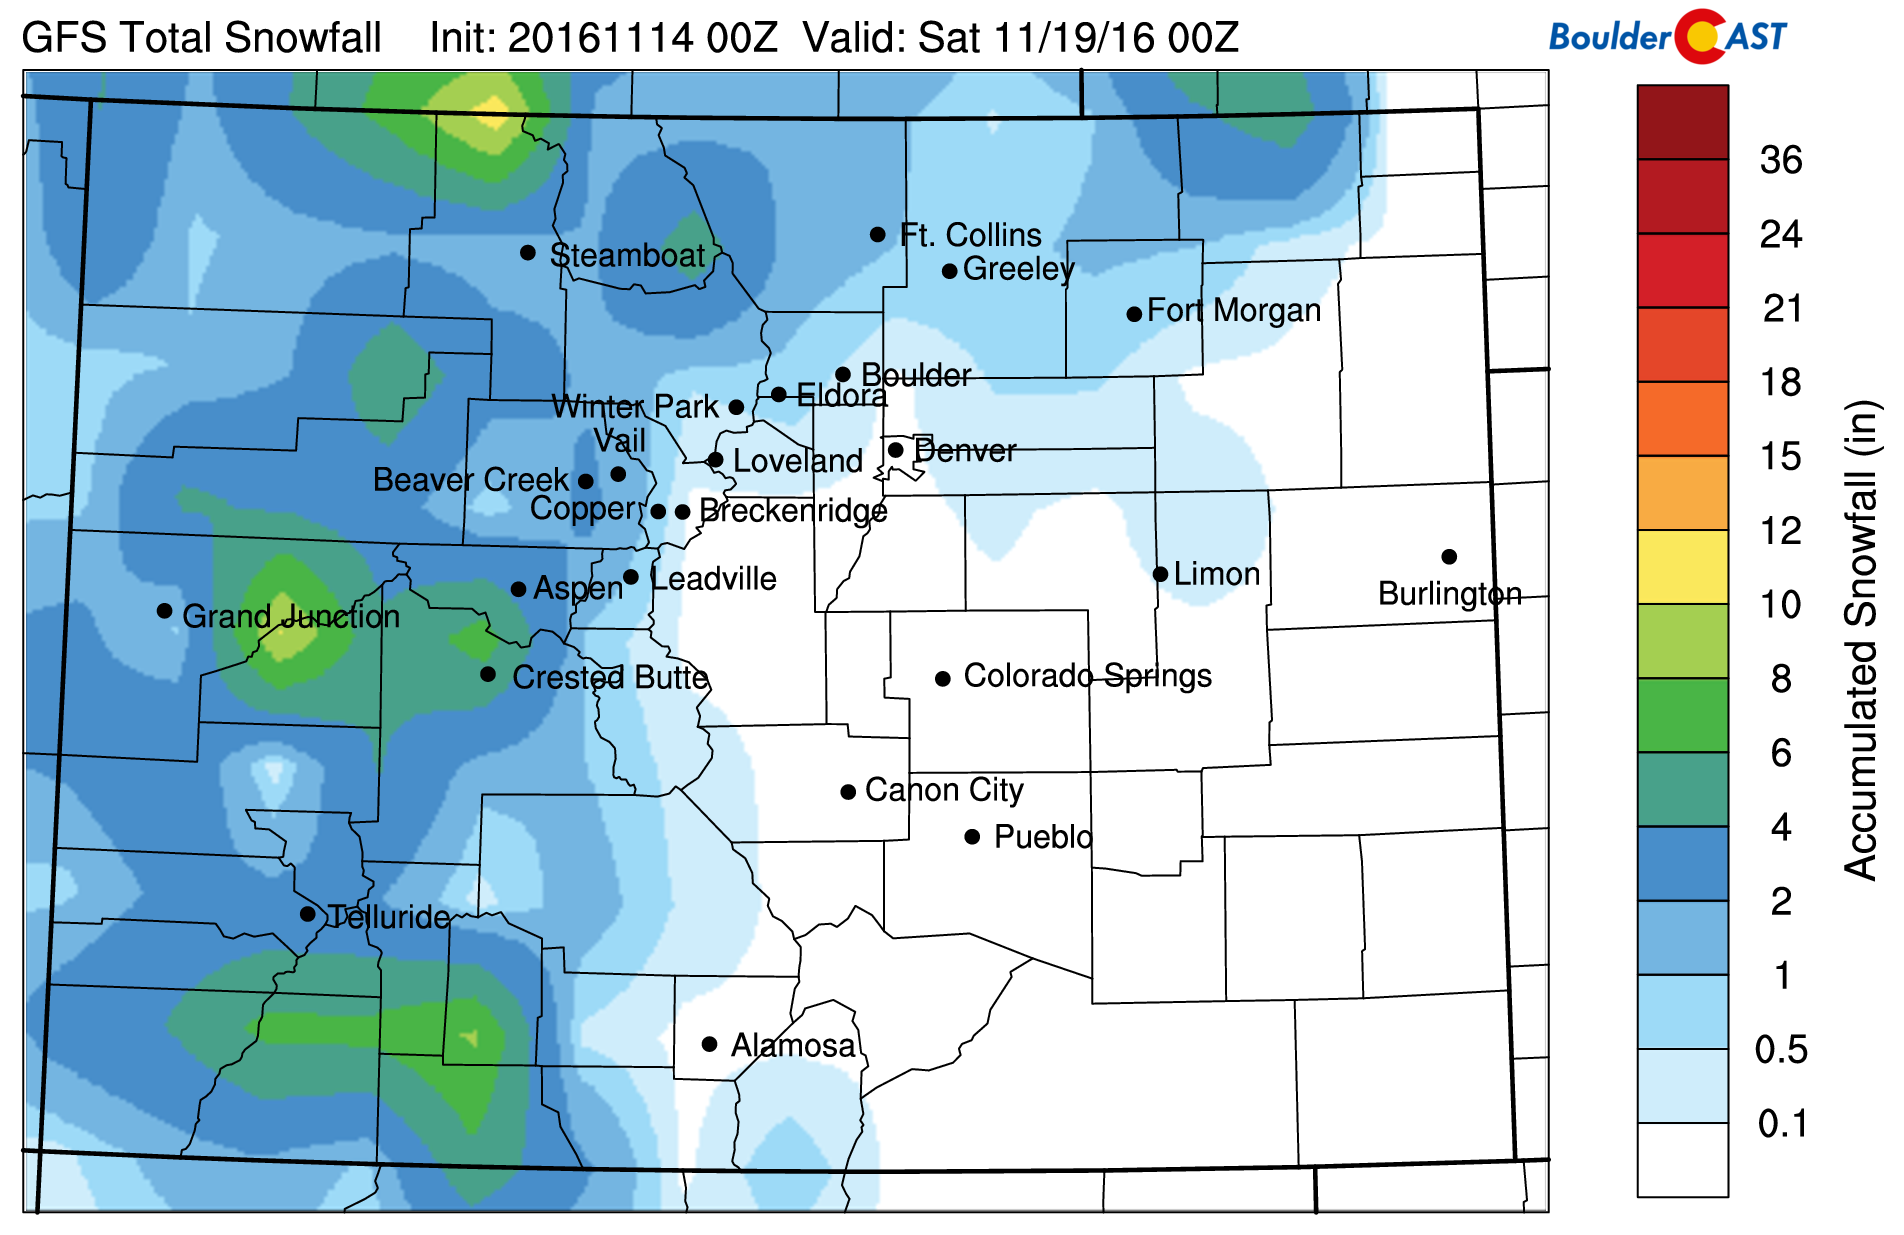 Current snowfall forecast using our snowfall algorithms and GFS data. Light snow may be possible on the Plains